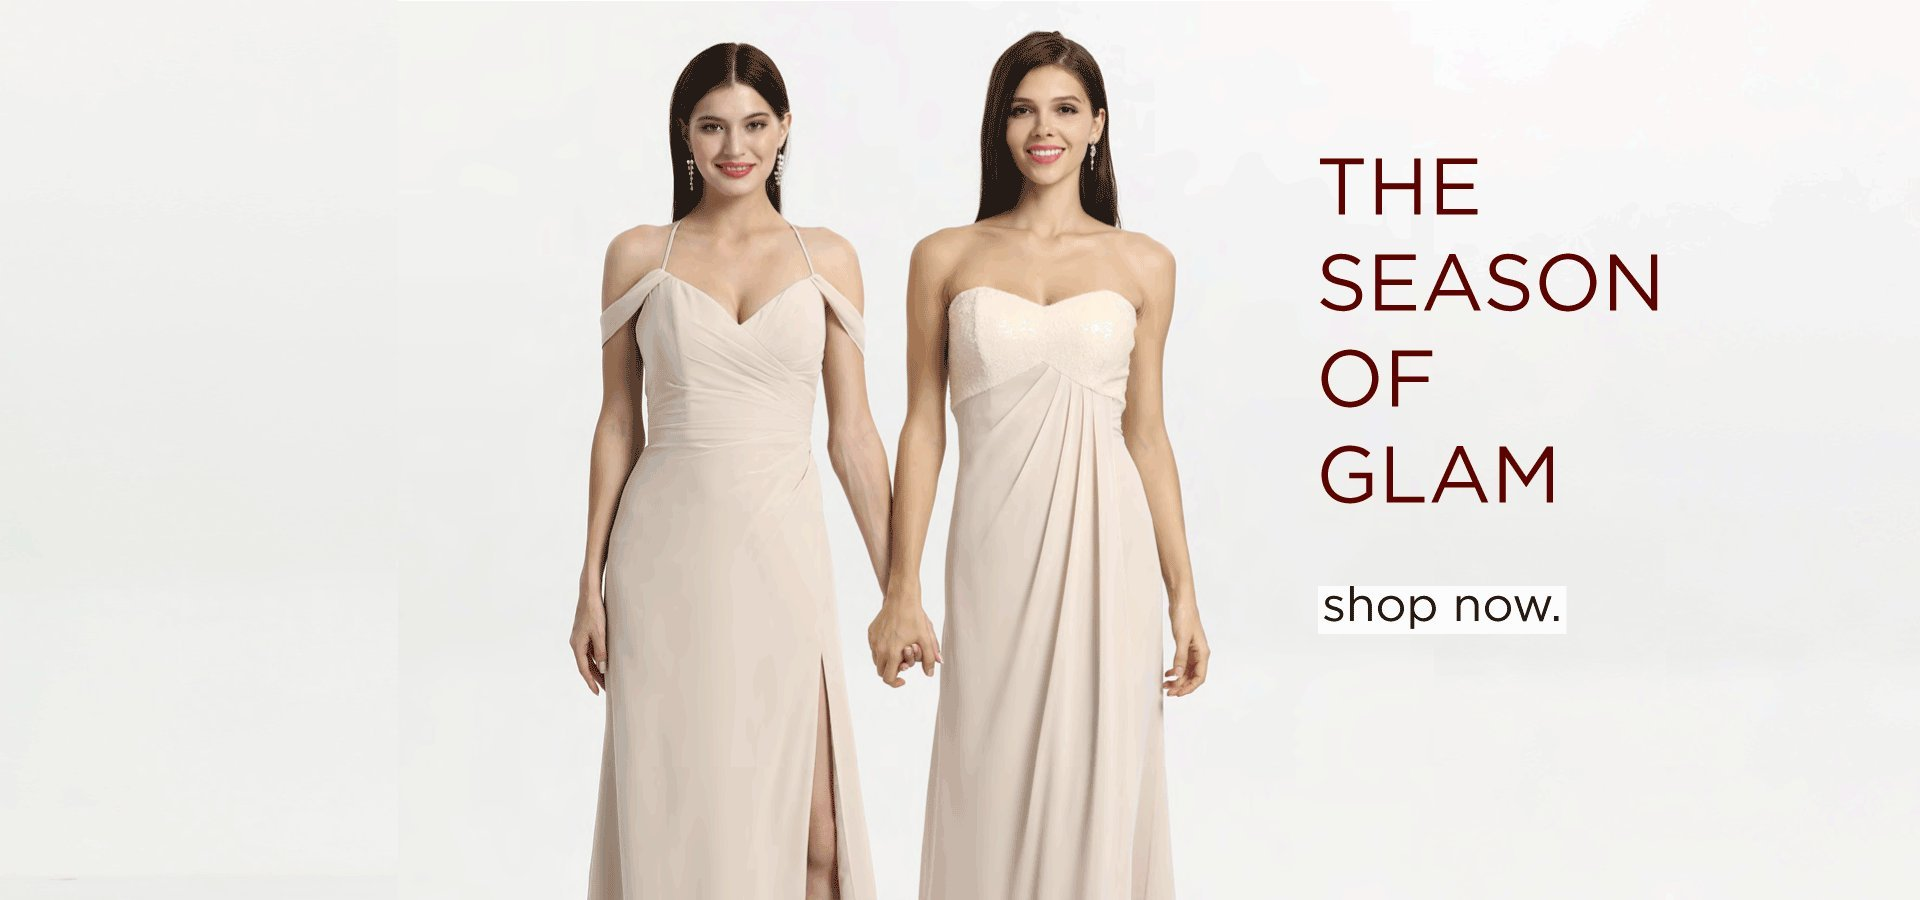 Shop for New bridesmaid dresses for your wedding